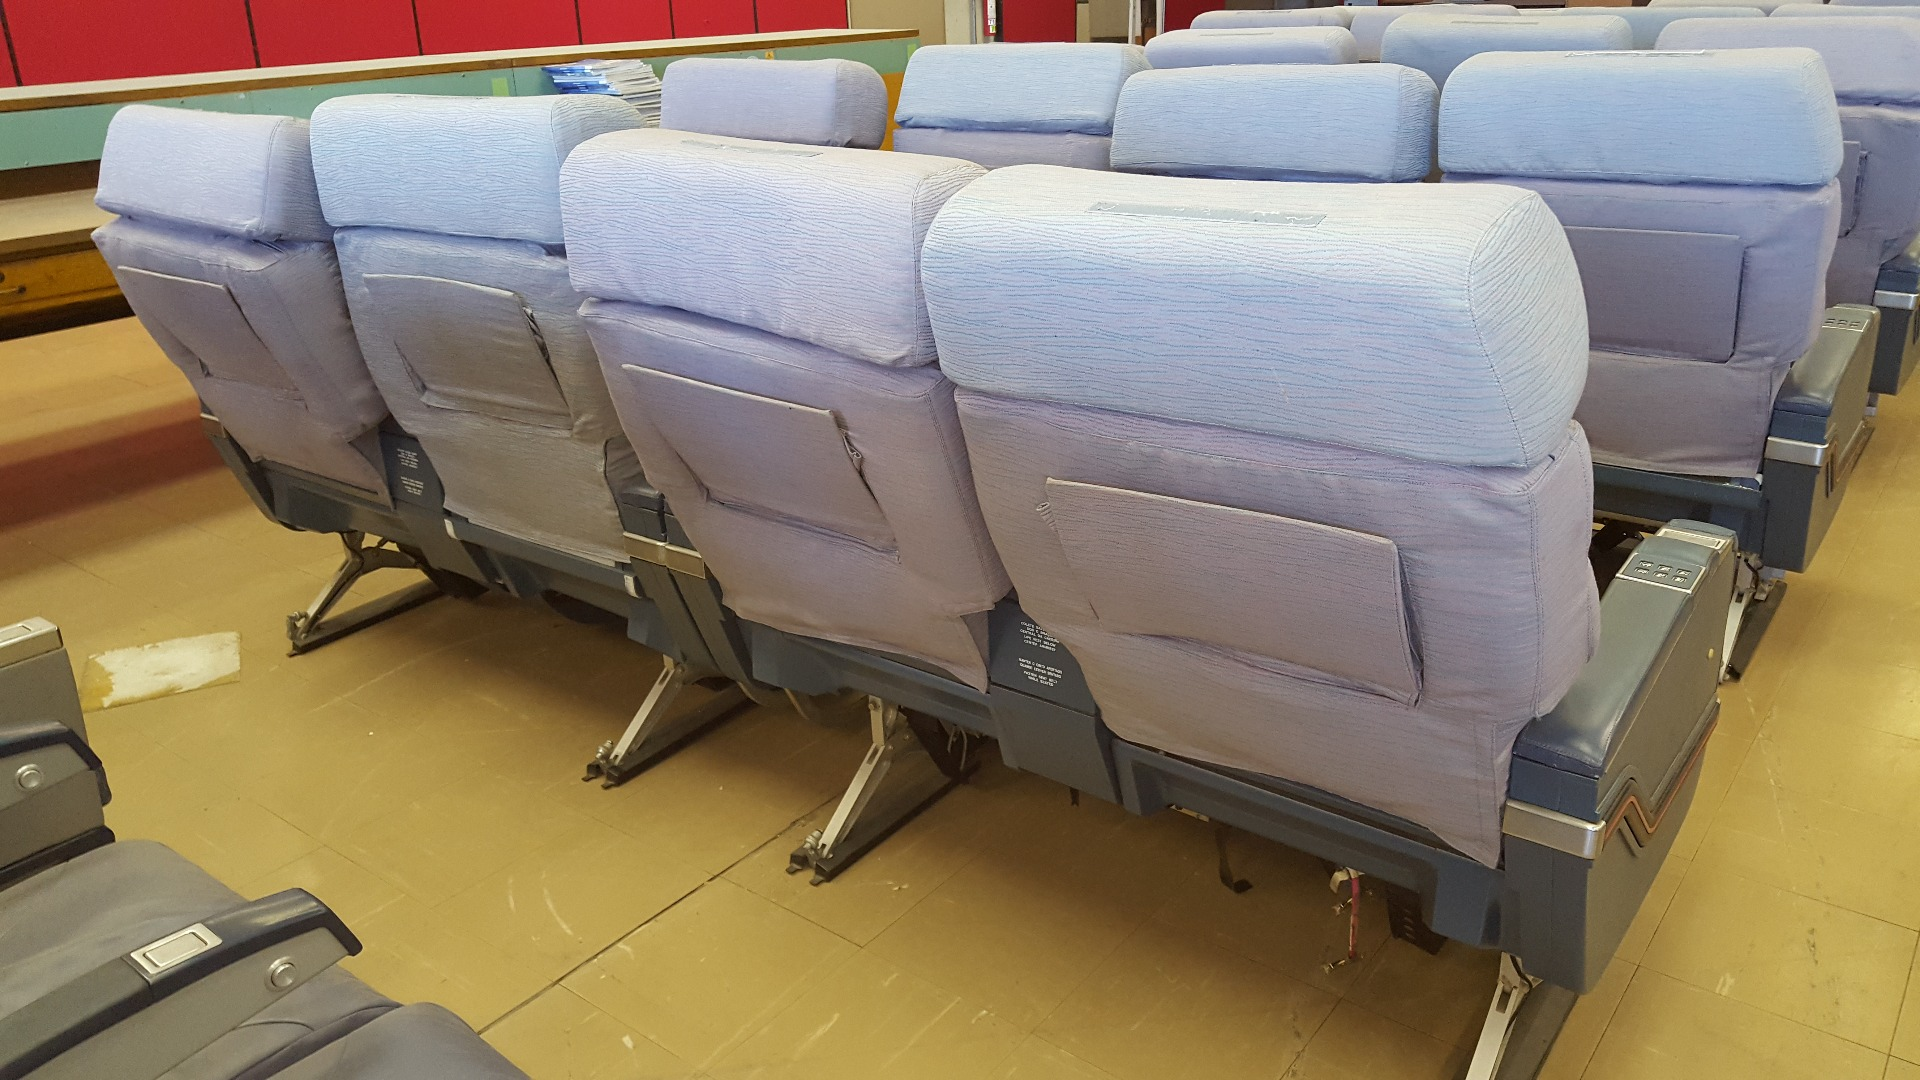 Executive double chair TAP A340 airplane   32